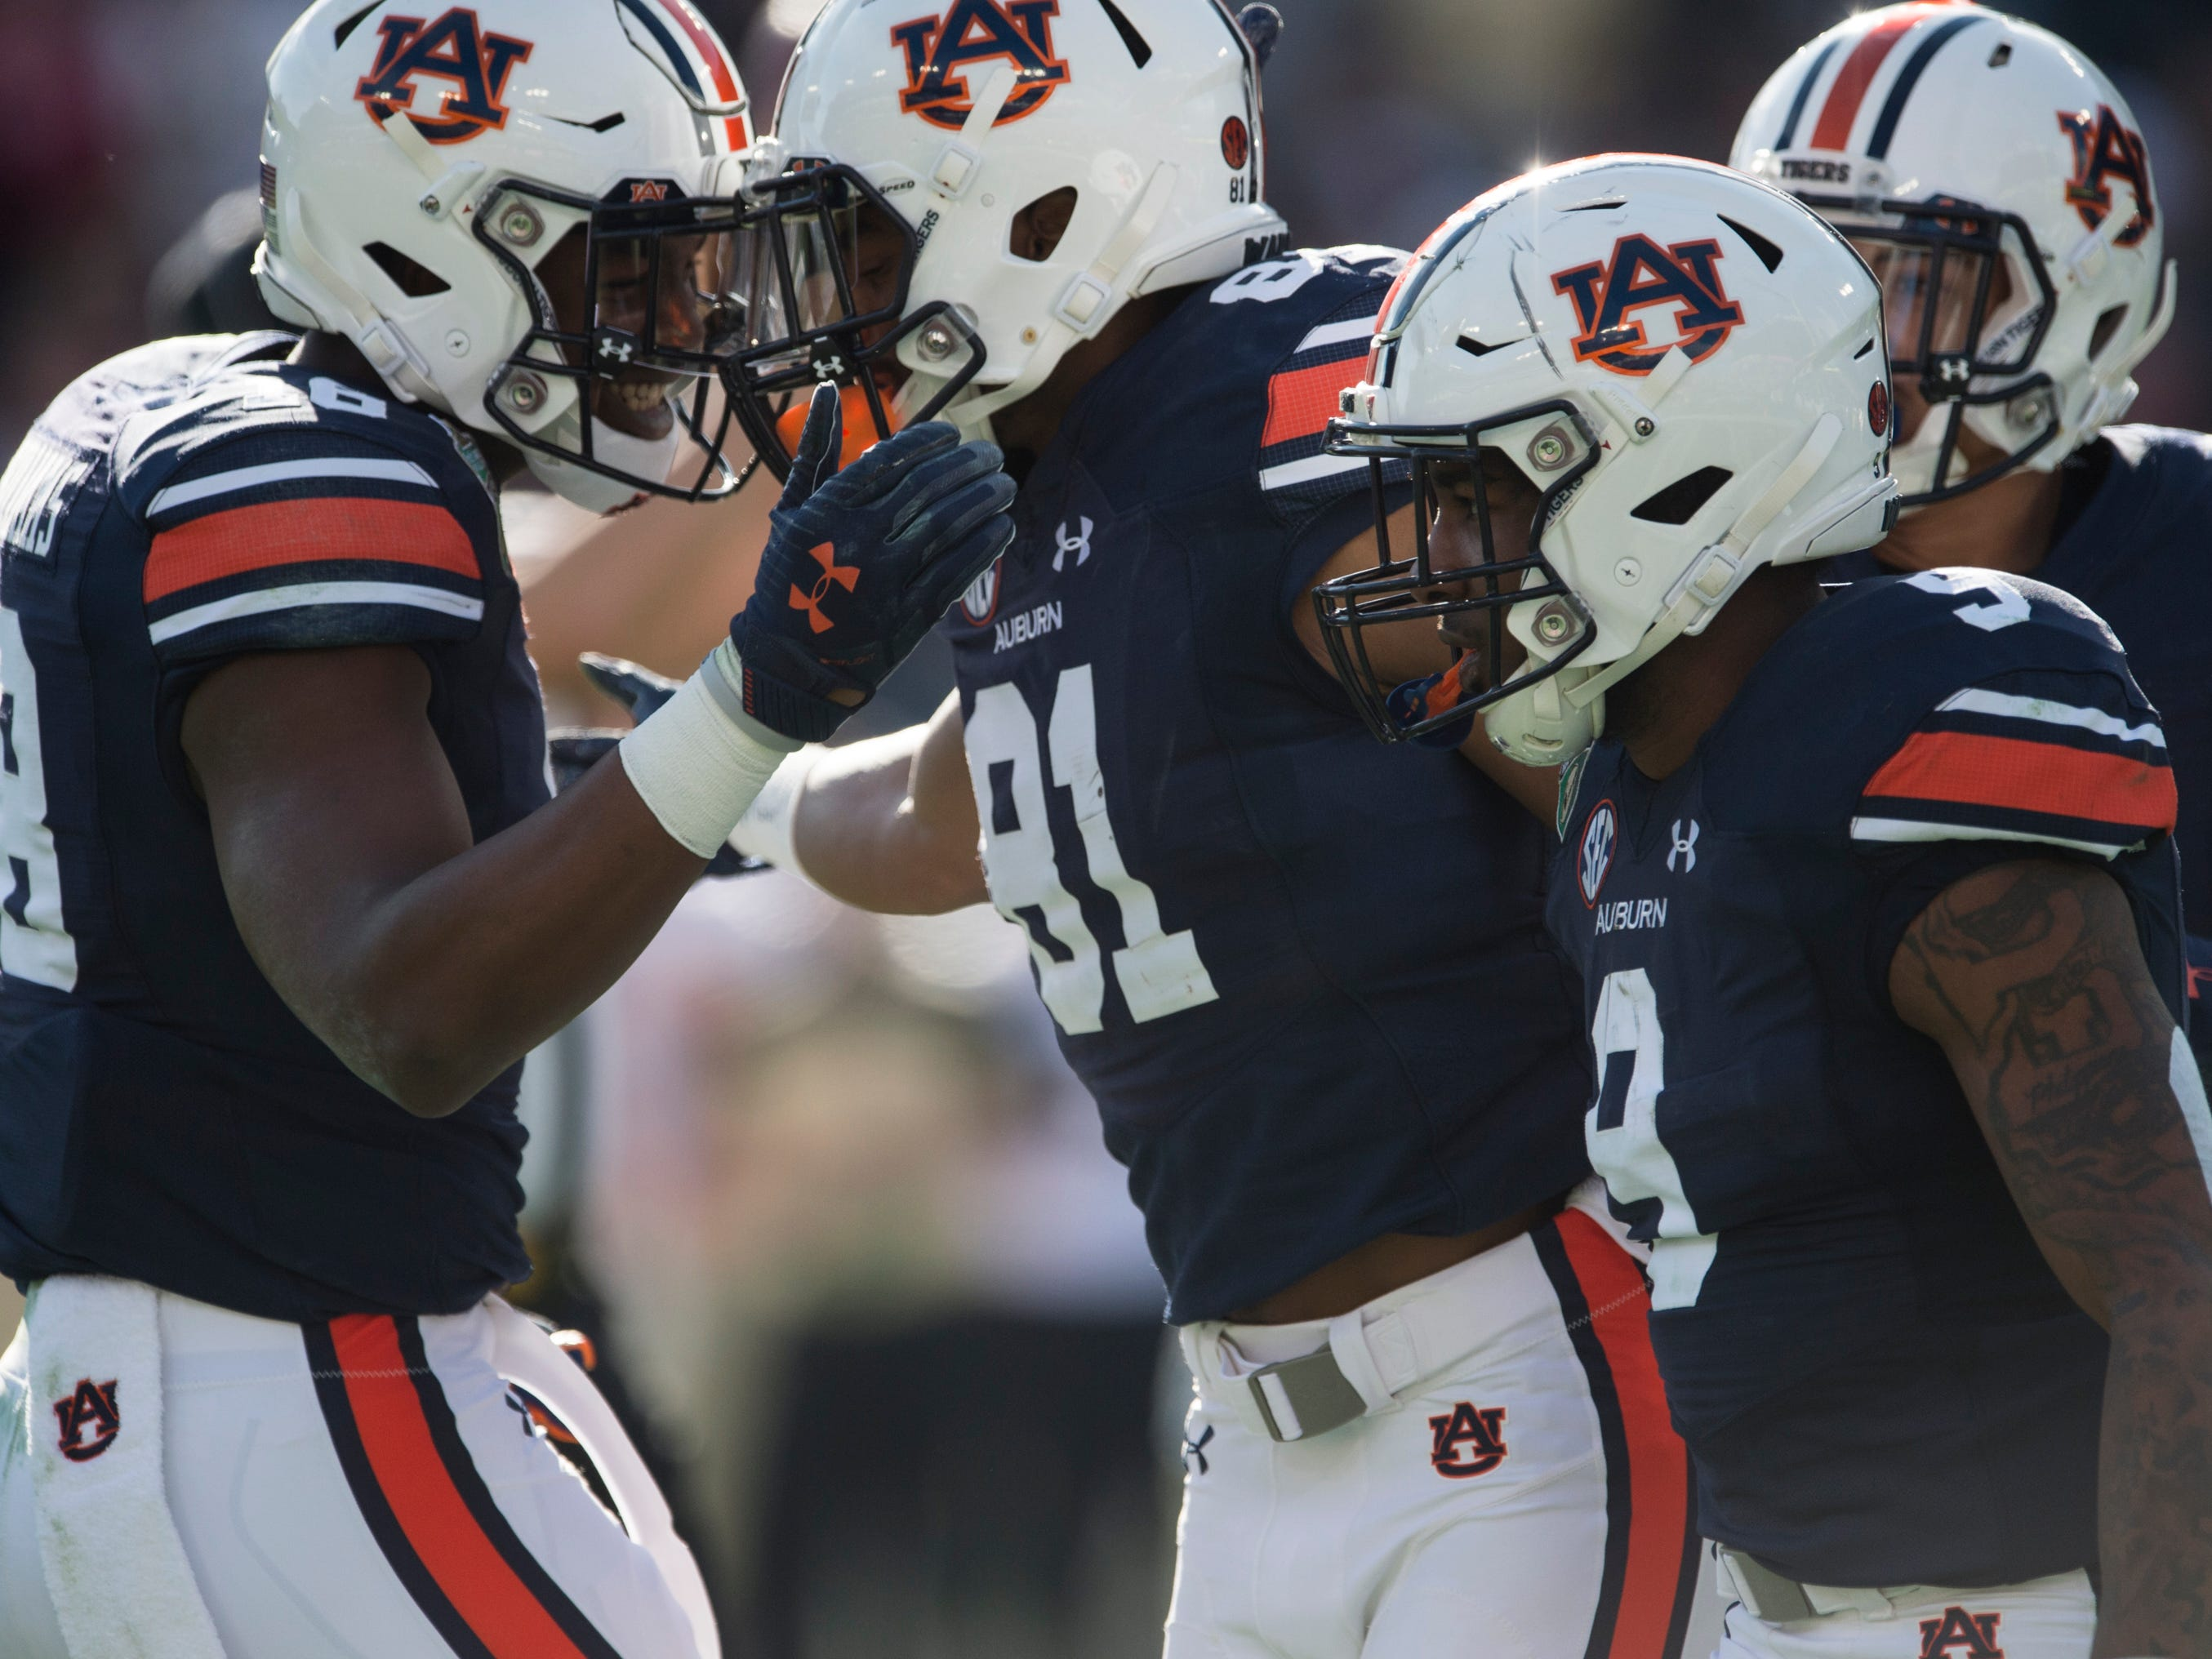 Auburn wide receiver Darius Slayton (81) celebrates his touchdown with teammates Seth Williams (18), Kam Martin (9) and Anthony Schwartz (5) during the Music City Bowl at Nissan Stadium in Nashville, Tenn., on Friday, Dec. 28, 2018.